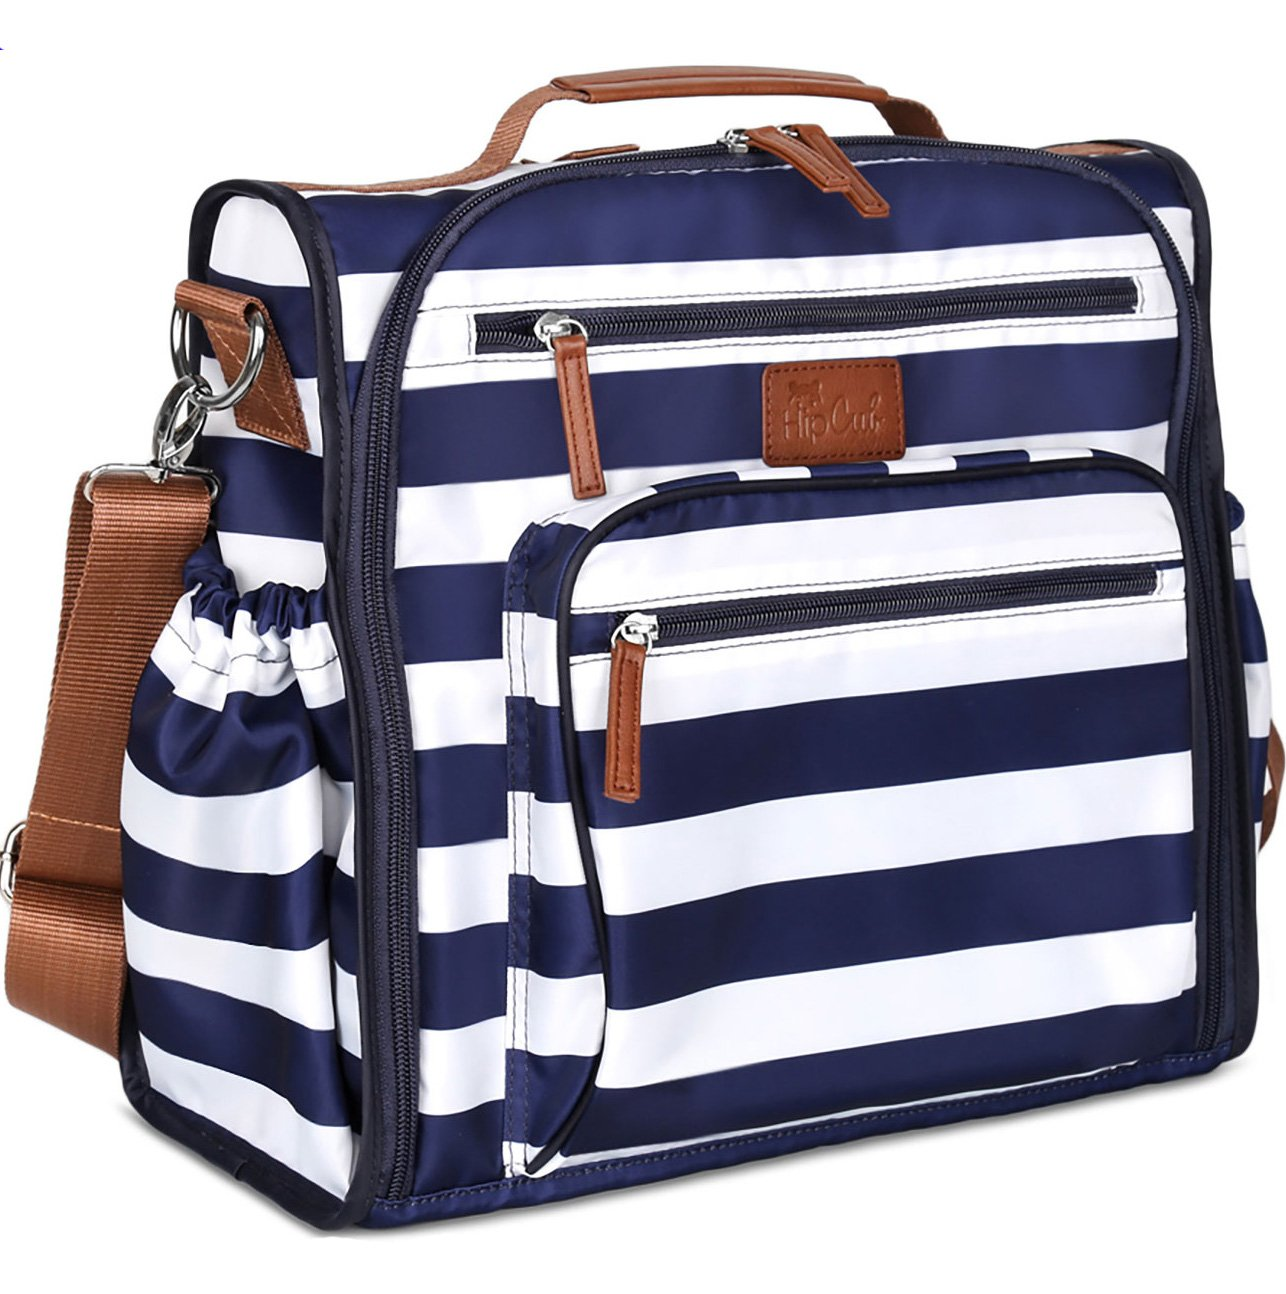 beb76ace74025 Amazon.com : Diaper Bag Backpack by Hip Cub - Convertible W/Cute Designer  Baby Changing Pad : Baby